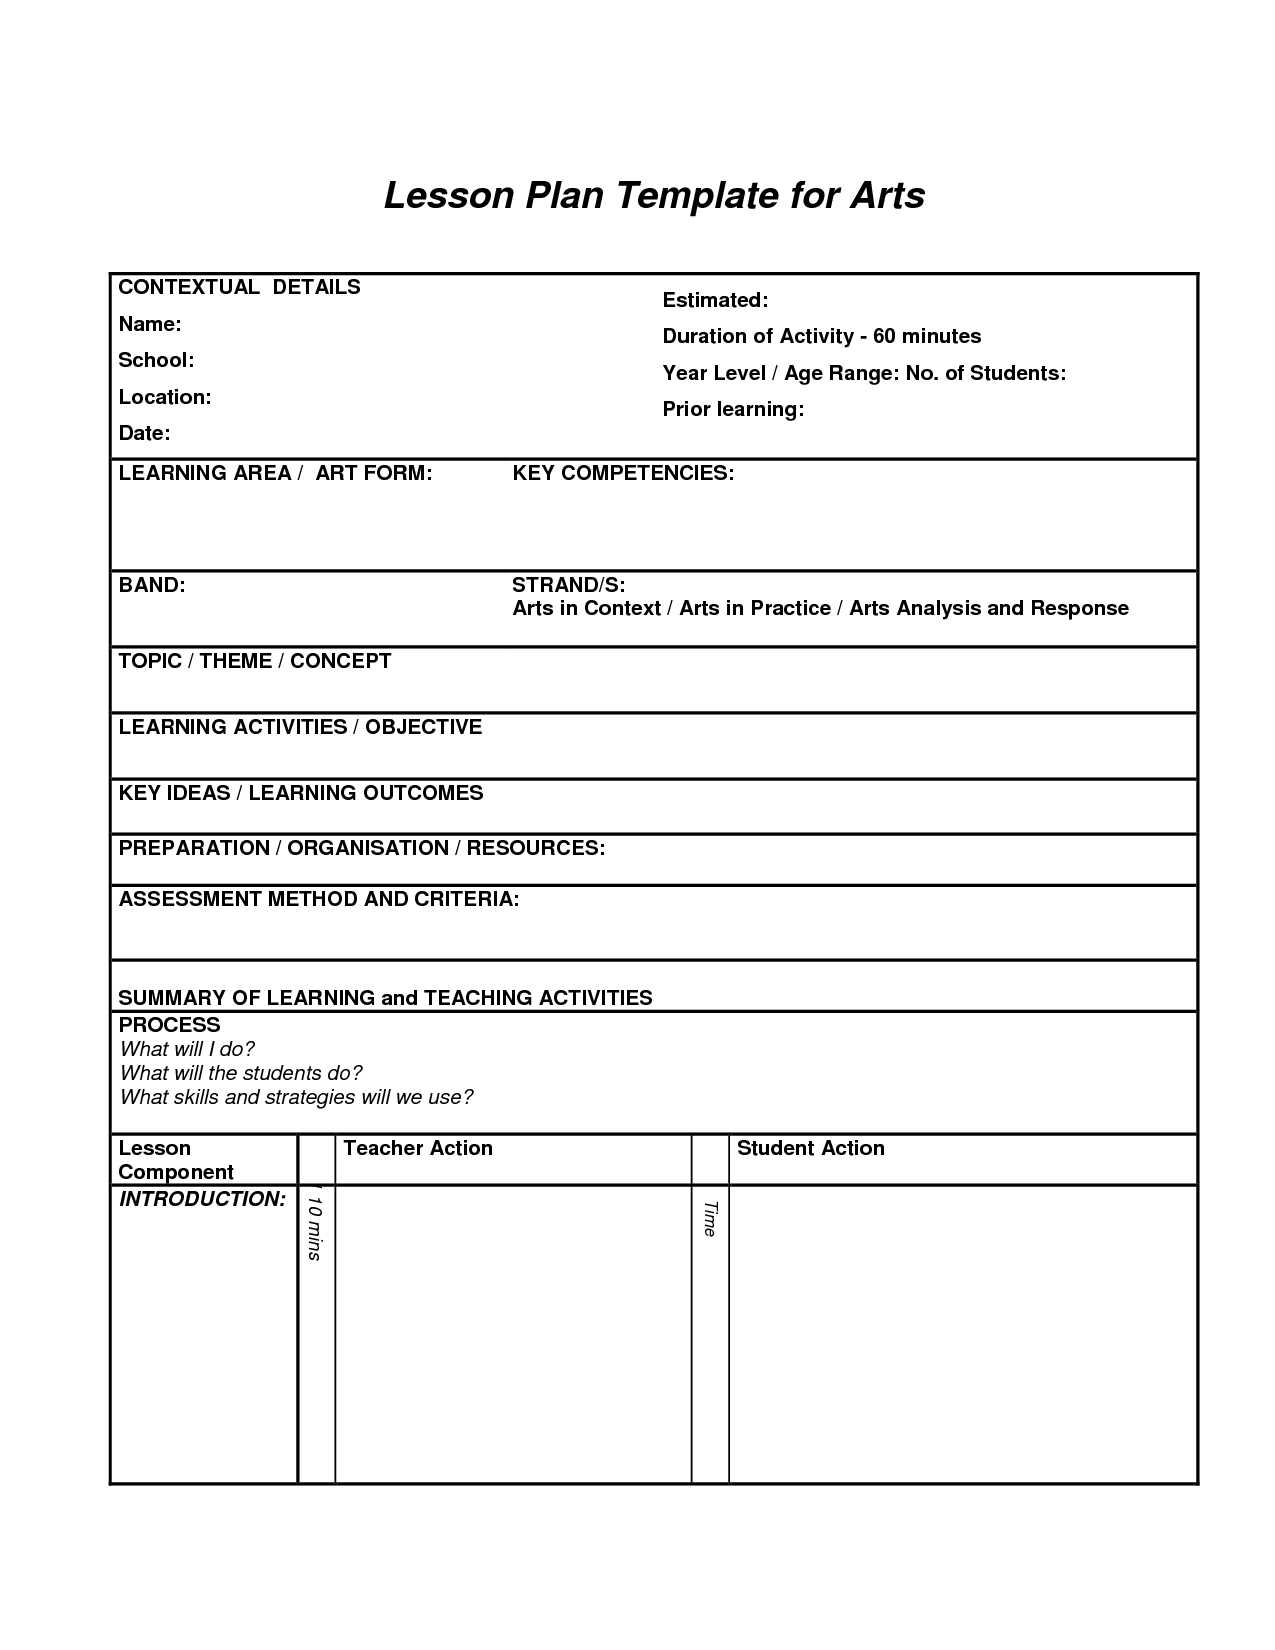 teachers college lesson plan template - lesson plan template for arts art education essentials